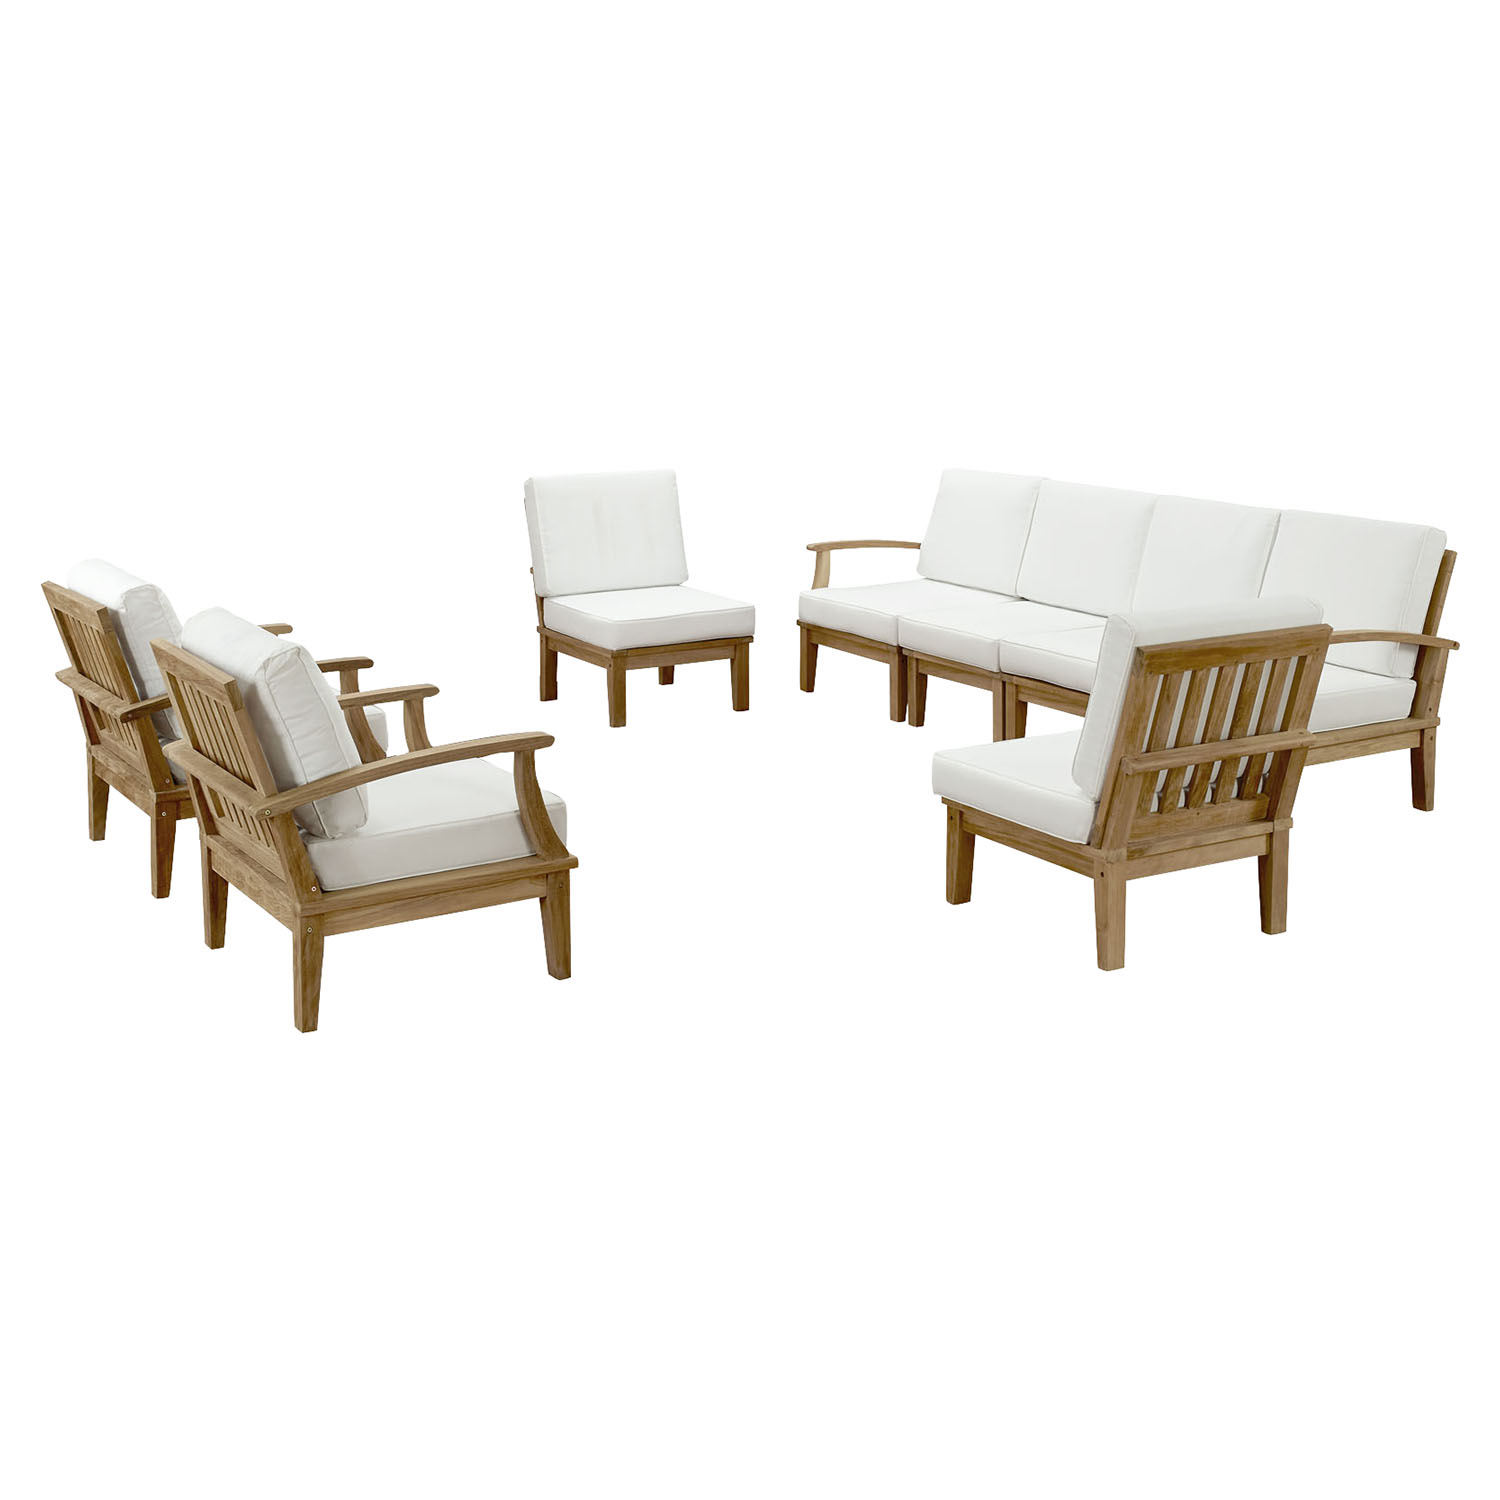 Marina 8 Pieces Outdoor Patio Teak Sofa Set - Natural White - EEI-1817-NAT-WHI-SET